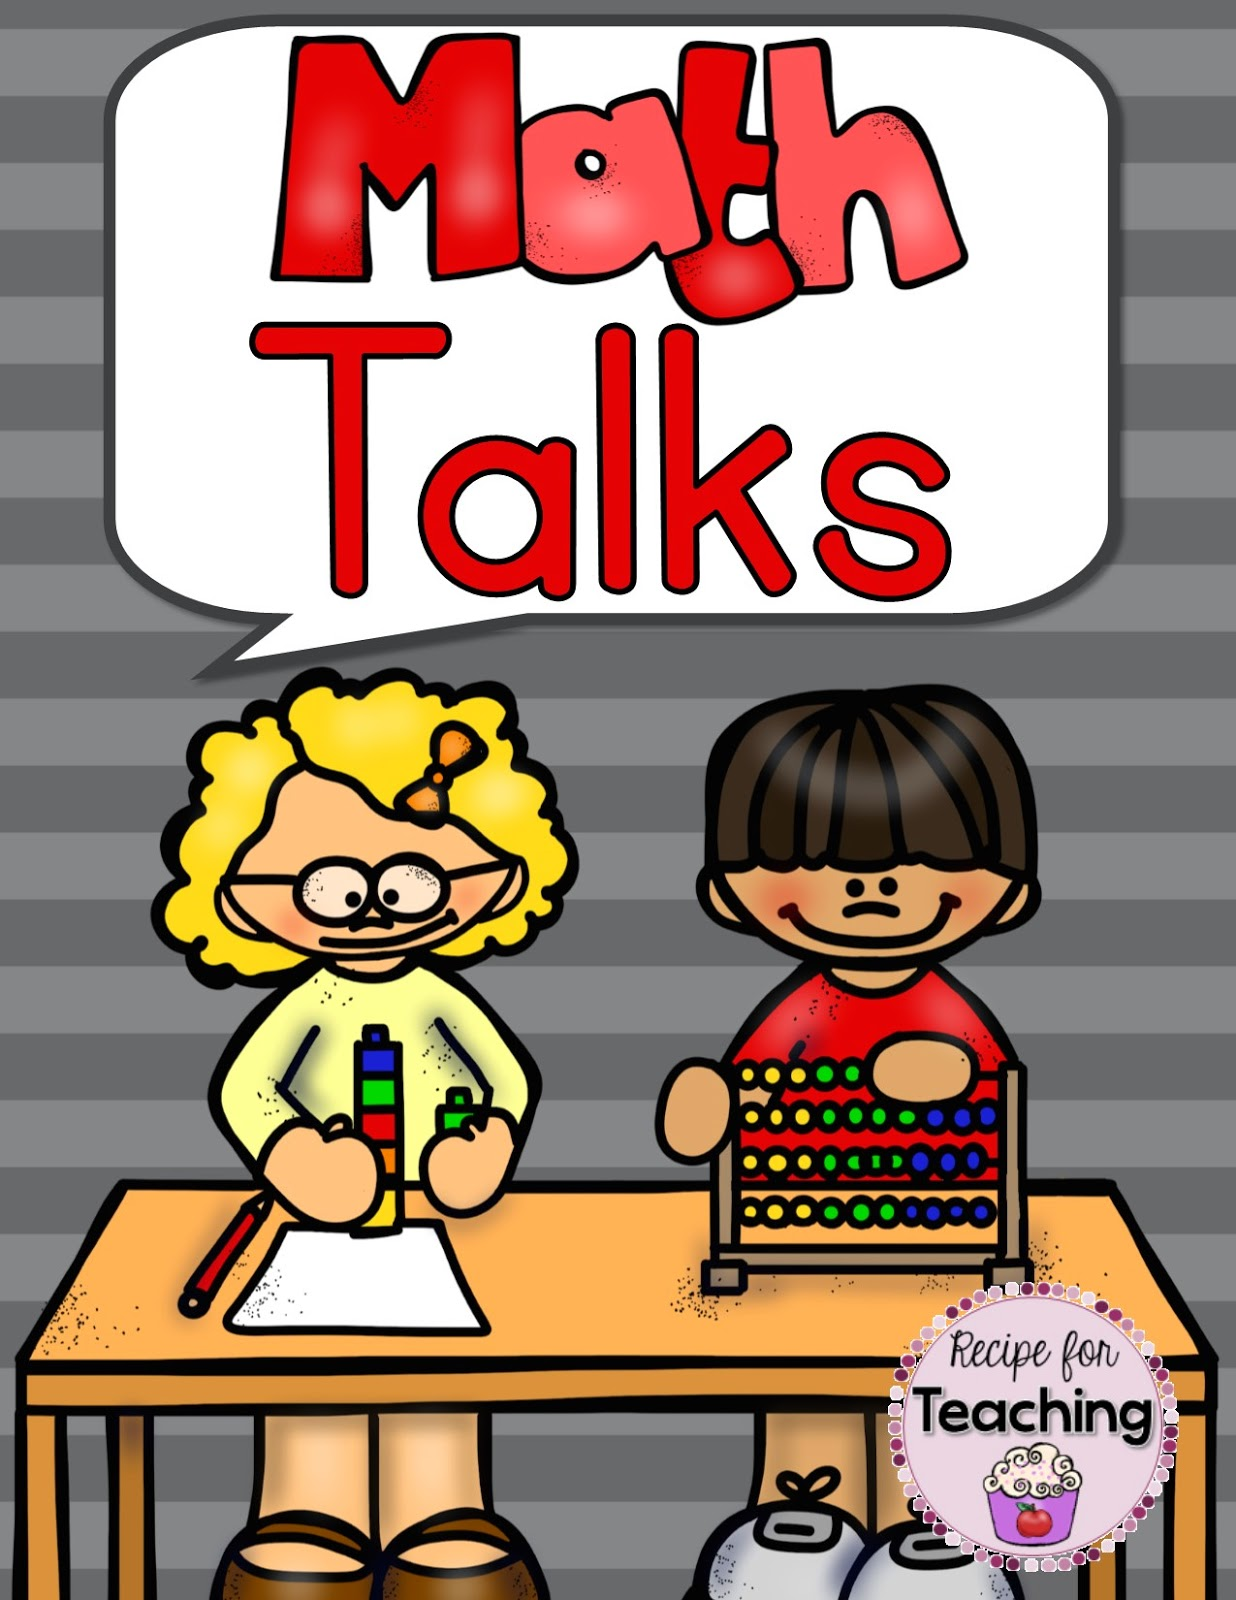 https://www.teacherspayteachers.com/Product/Math-Talks-1712604